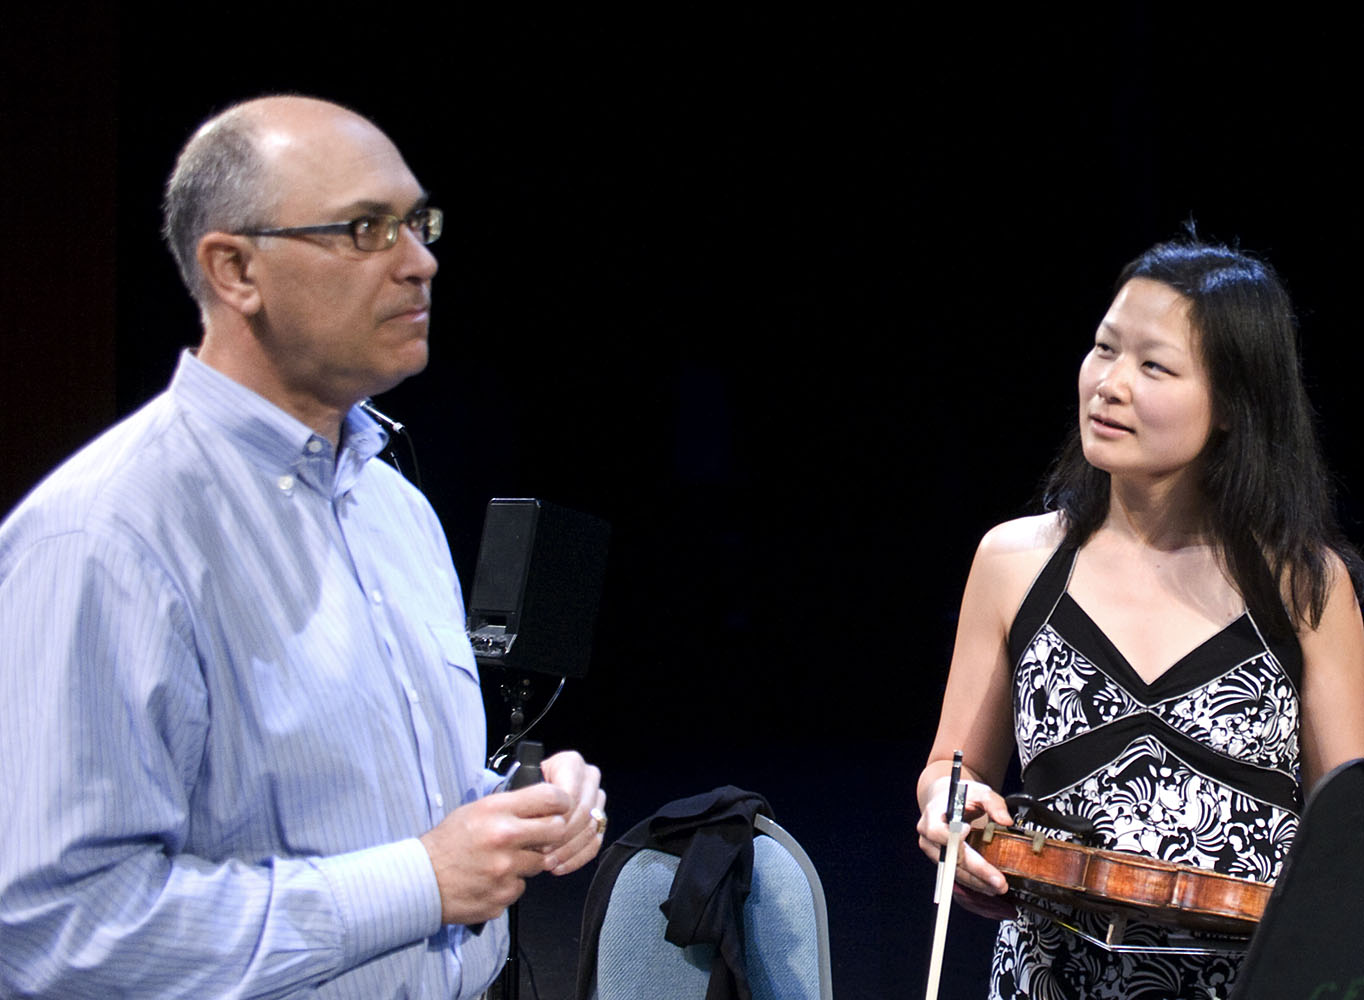 Composer David Felder Discussing His Piece Another Face With Violinist Lina Bahn  2